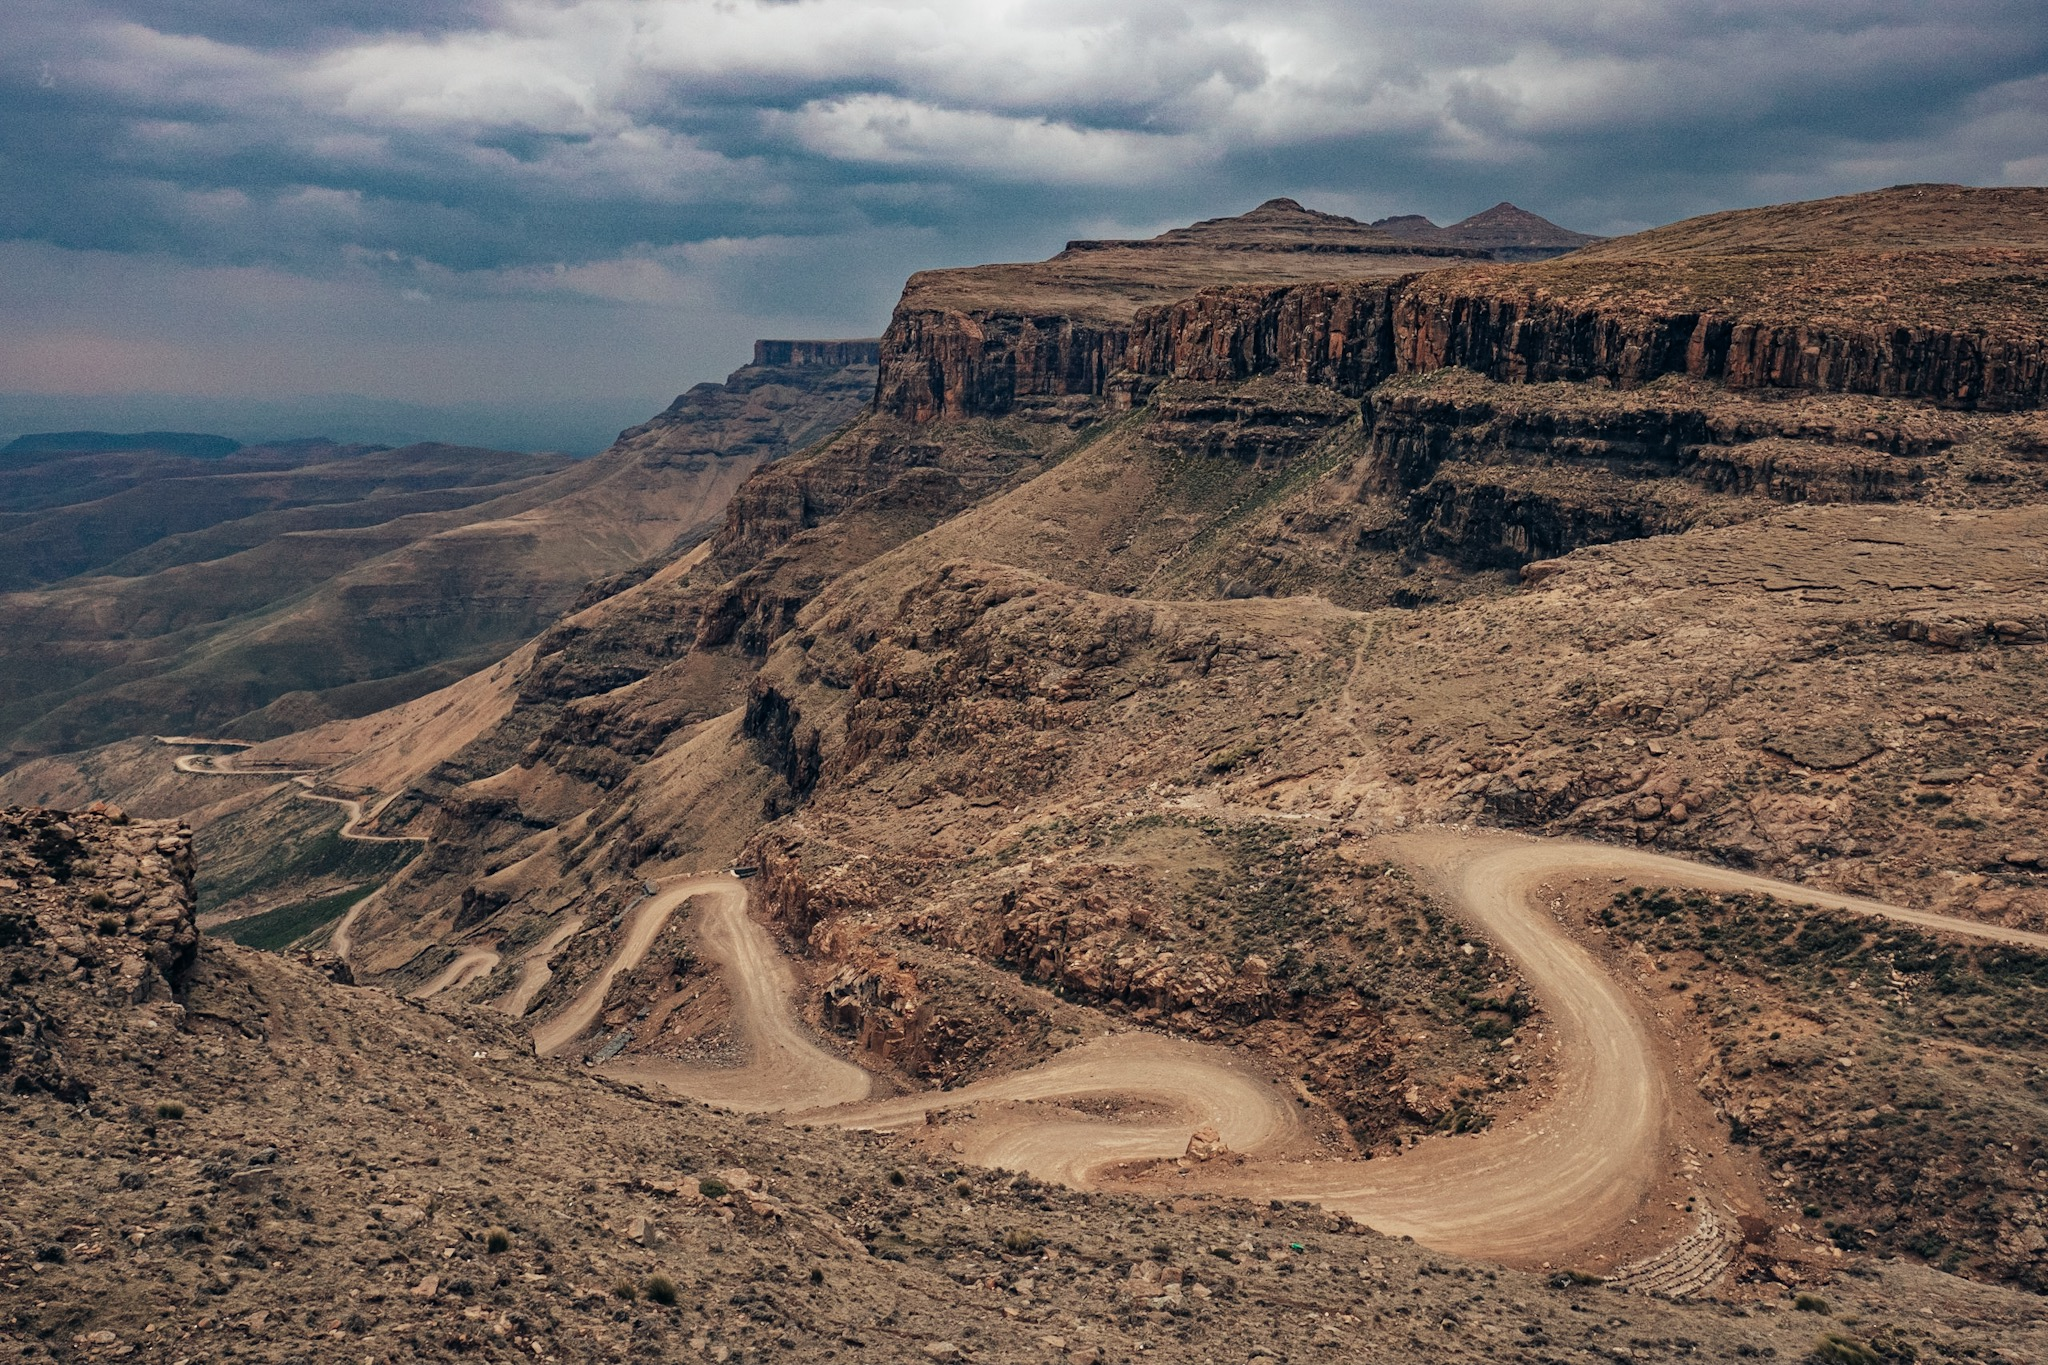 Sani Pass is one of Africa's most iconic mountain passes. Bonafide Moto Co has now down this trip three times.